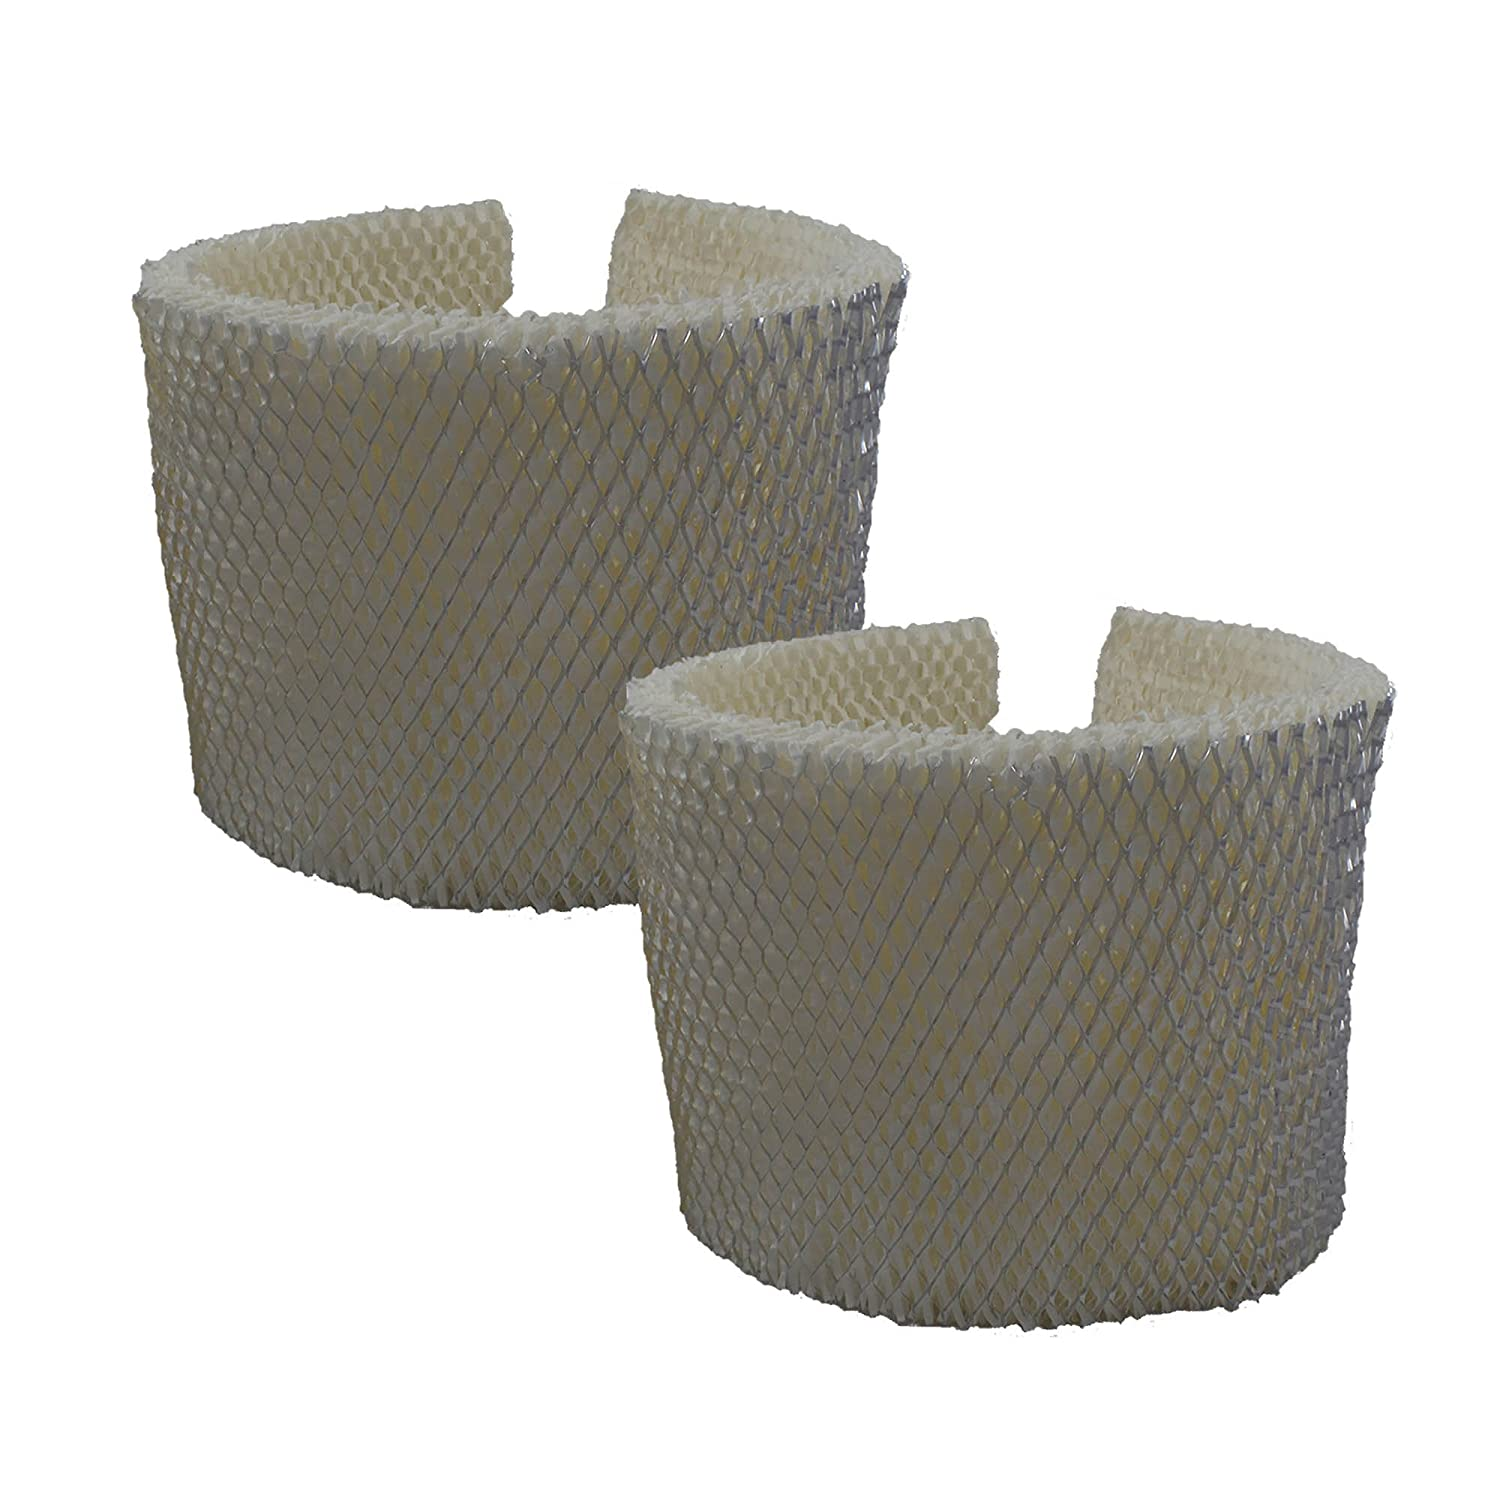 Air Filter Factory 2 Pack Compatible Replacement For Kenmore 15412 Humidifier Filter